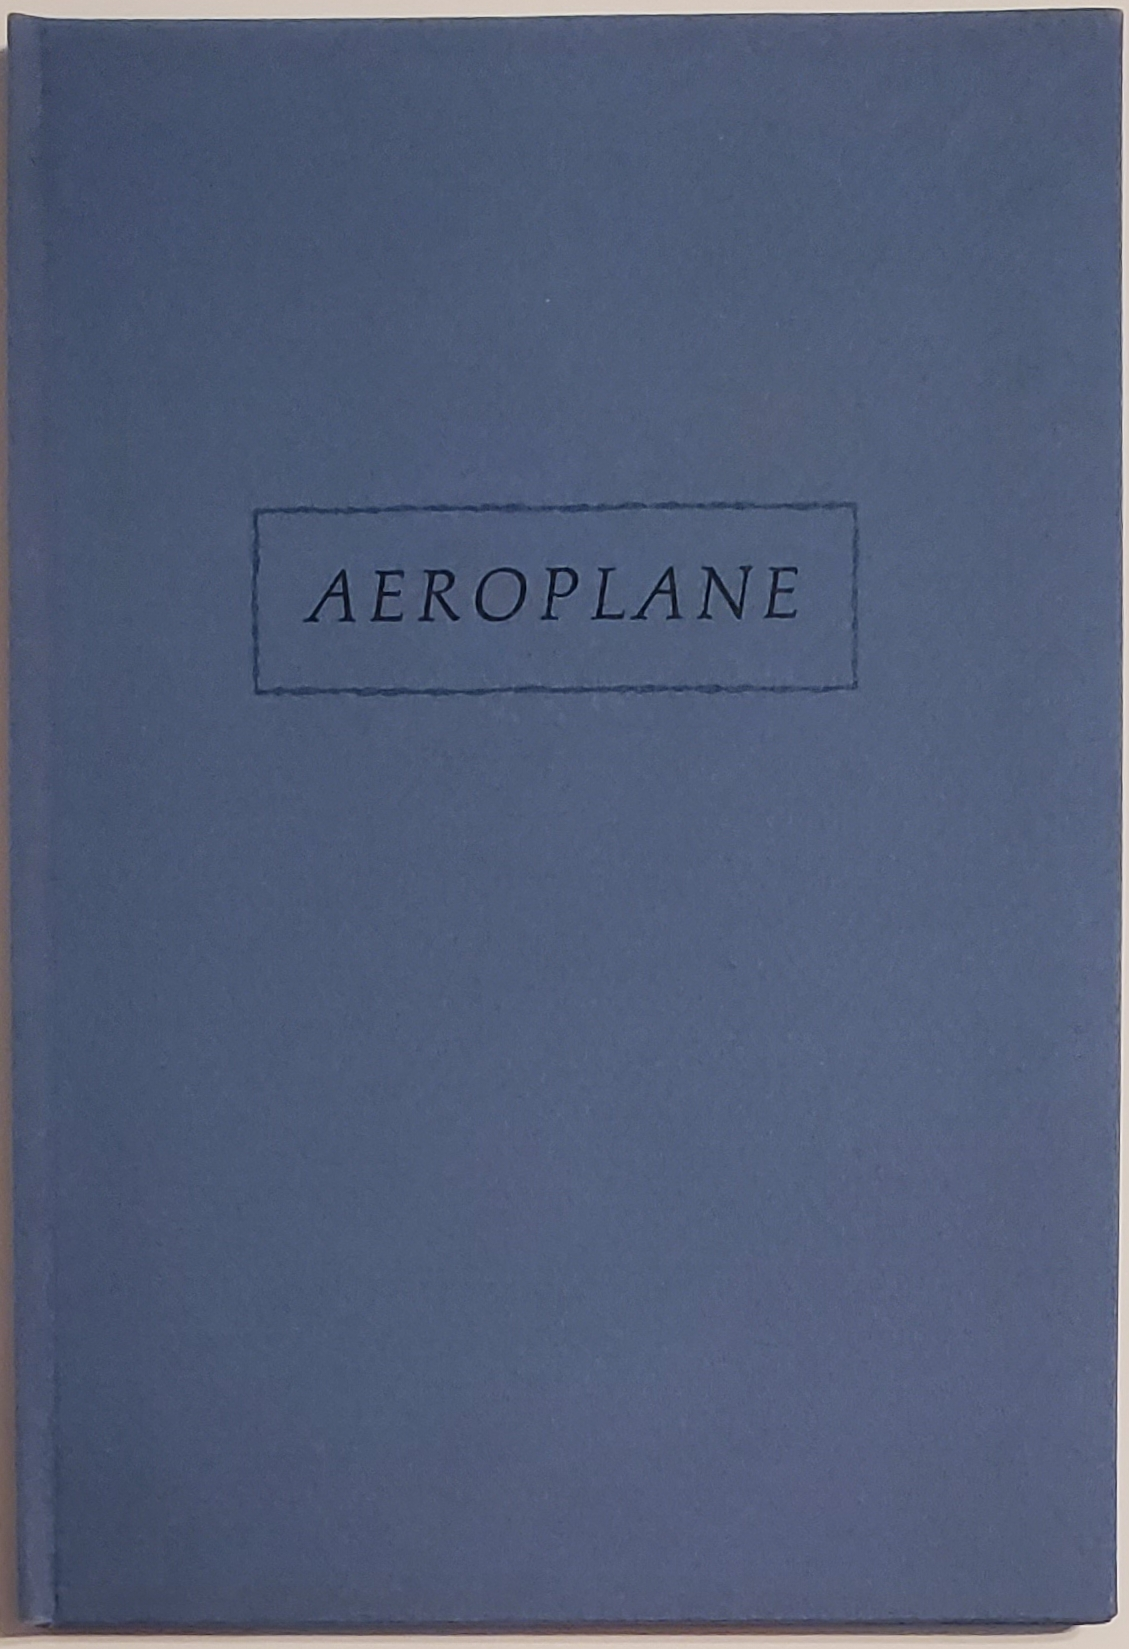 AEROPLANE or, how he talked to himself as if reciting poetry [LIMITED SIGNED]. Haruki Murakami.